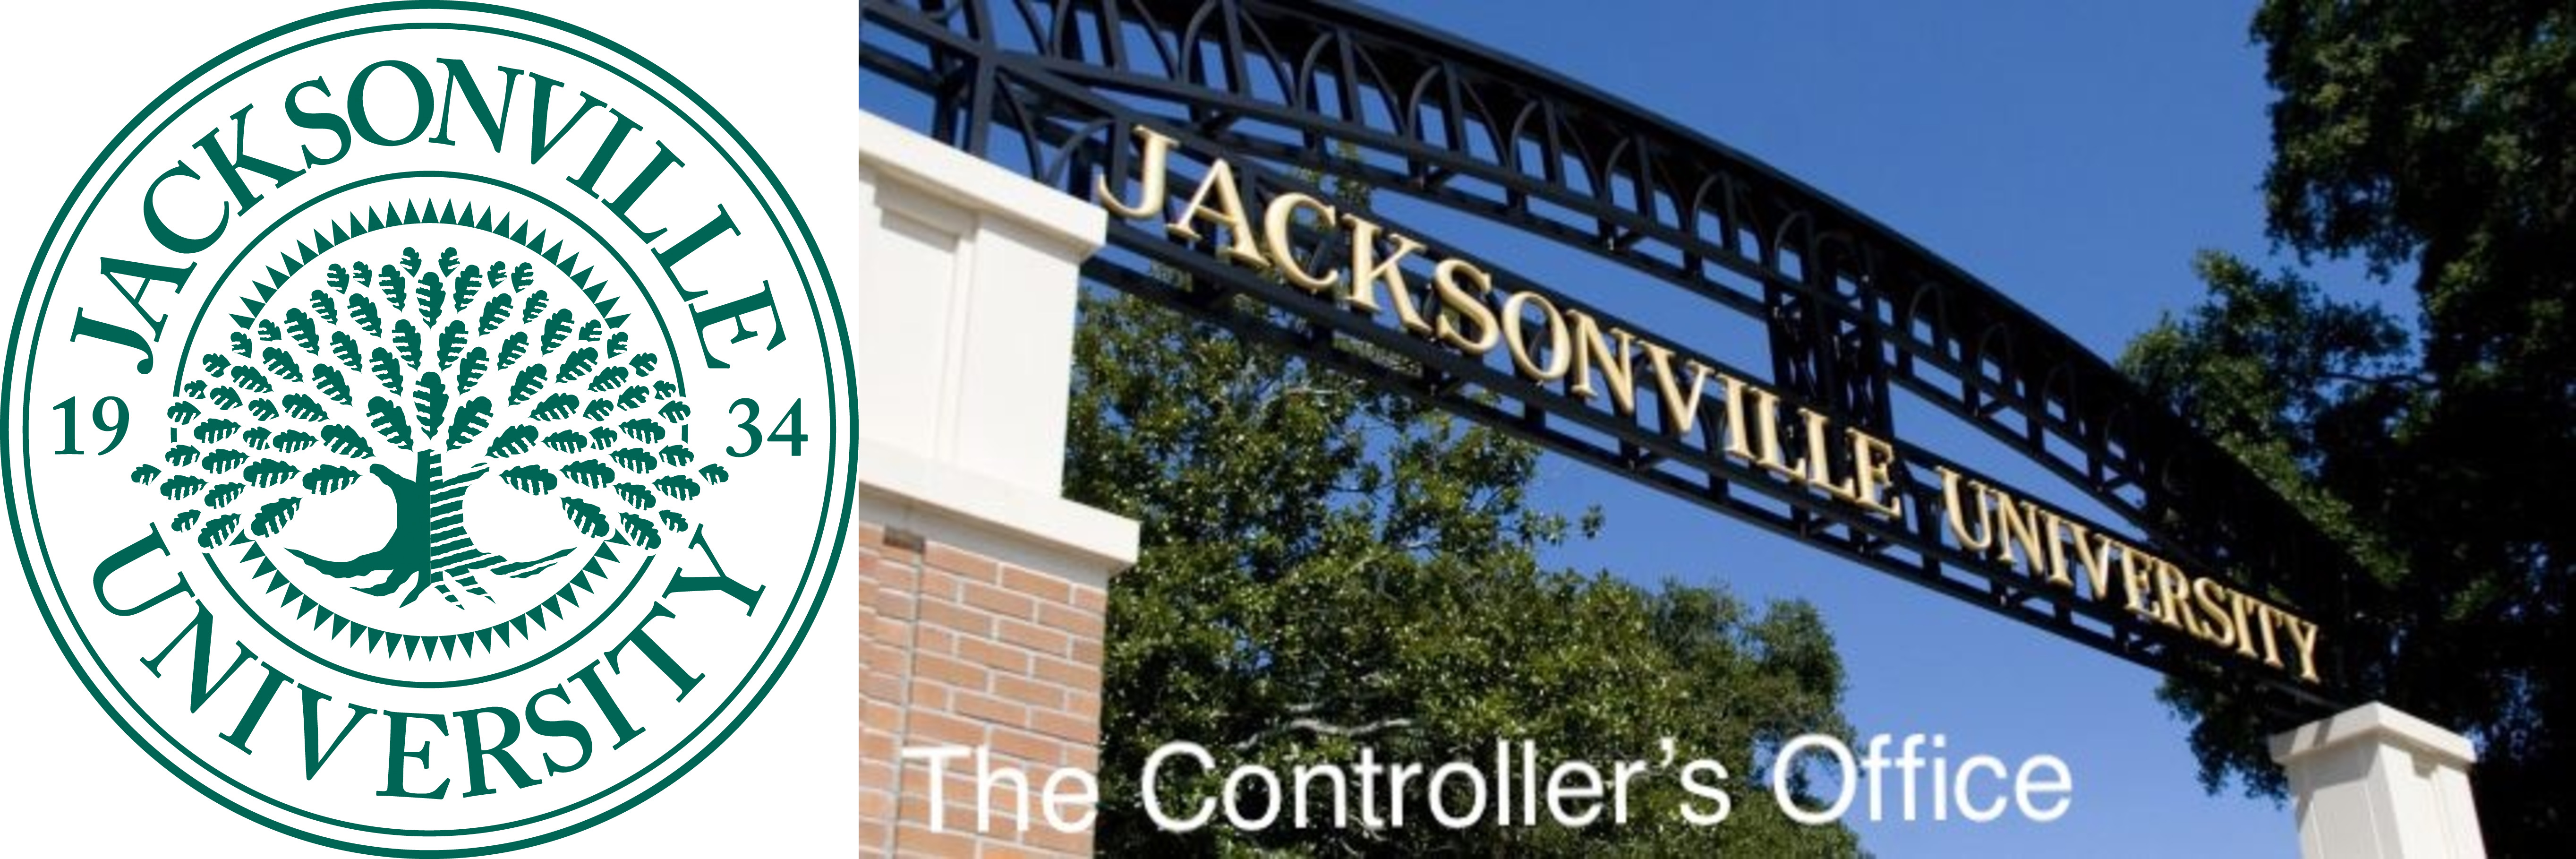 Jacksonville University Entrance, The Controller's Office